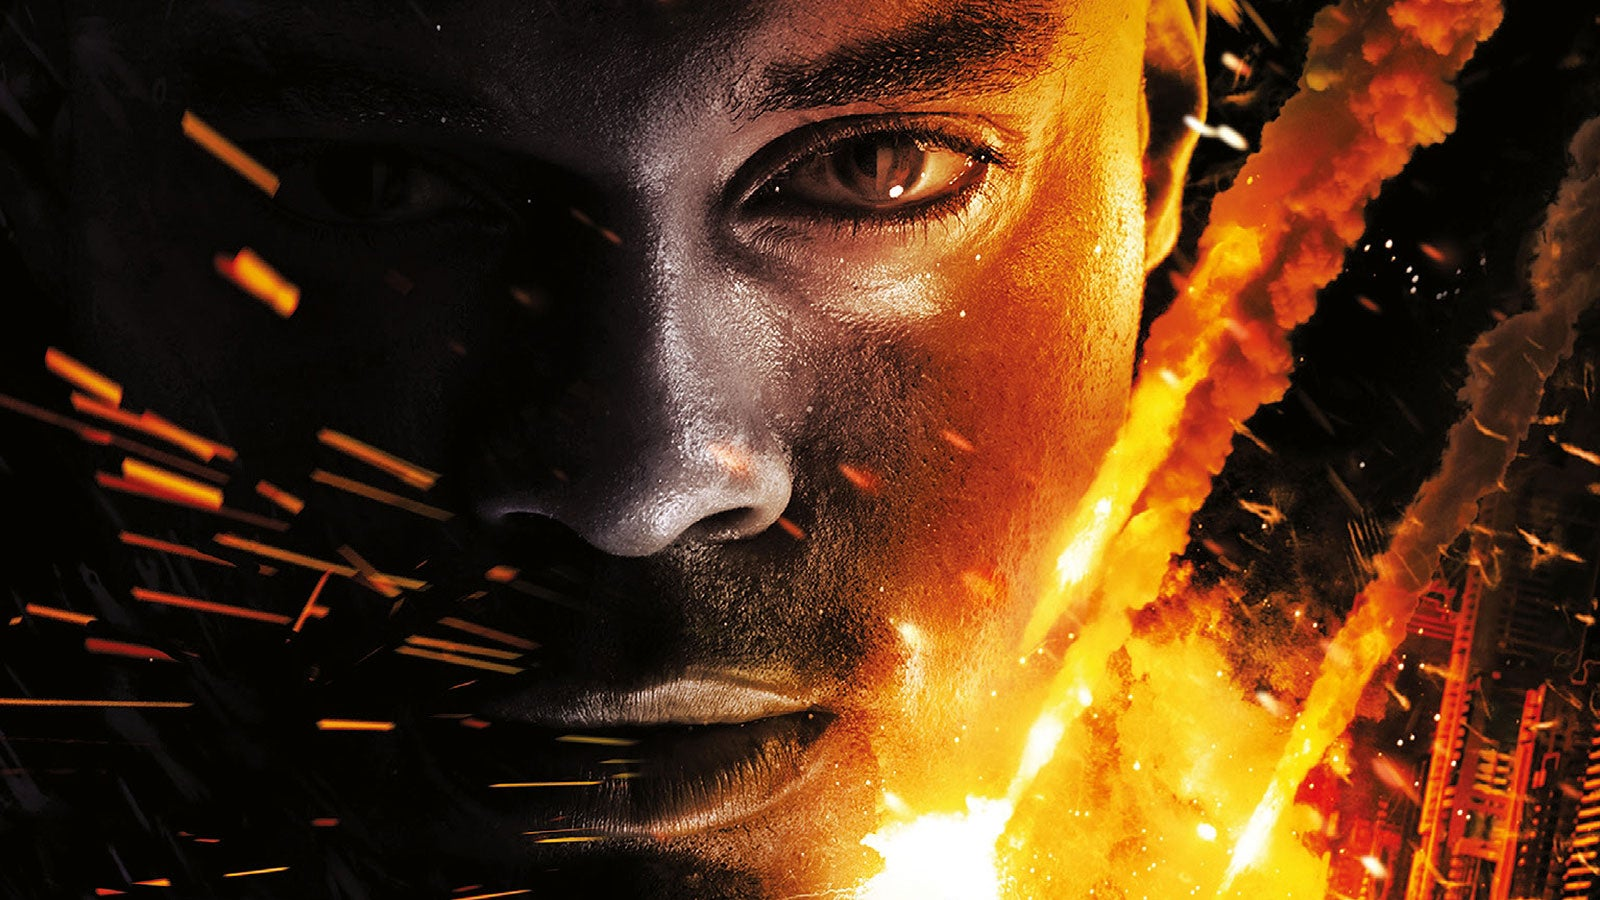 A man's face with sparks of fire. Image taken from The Void Trilogy book covers.